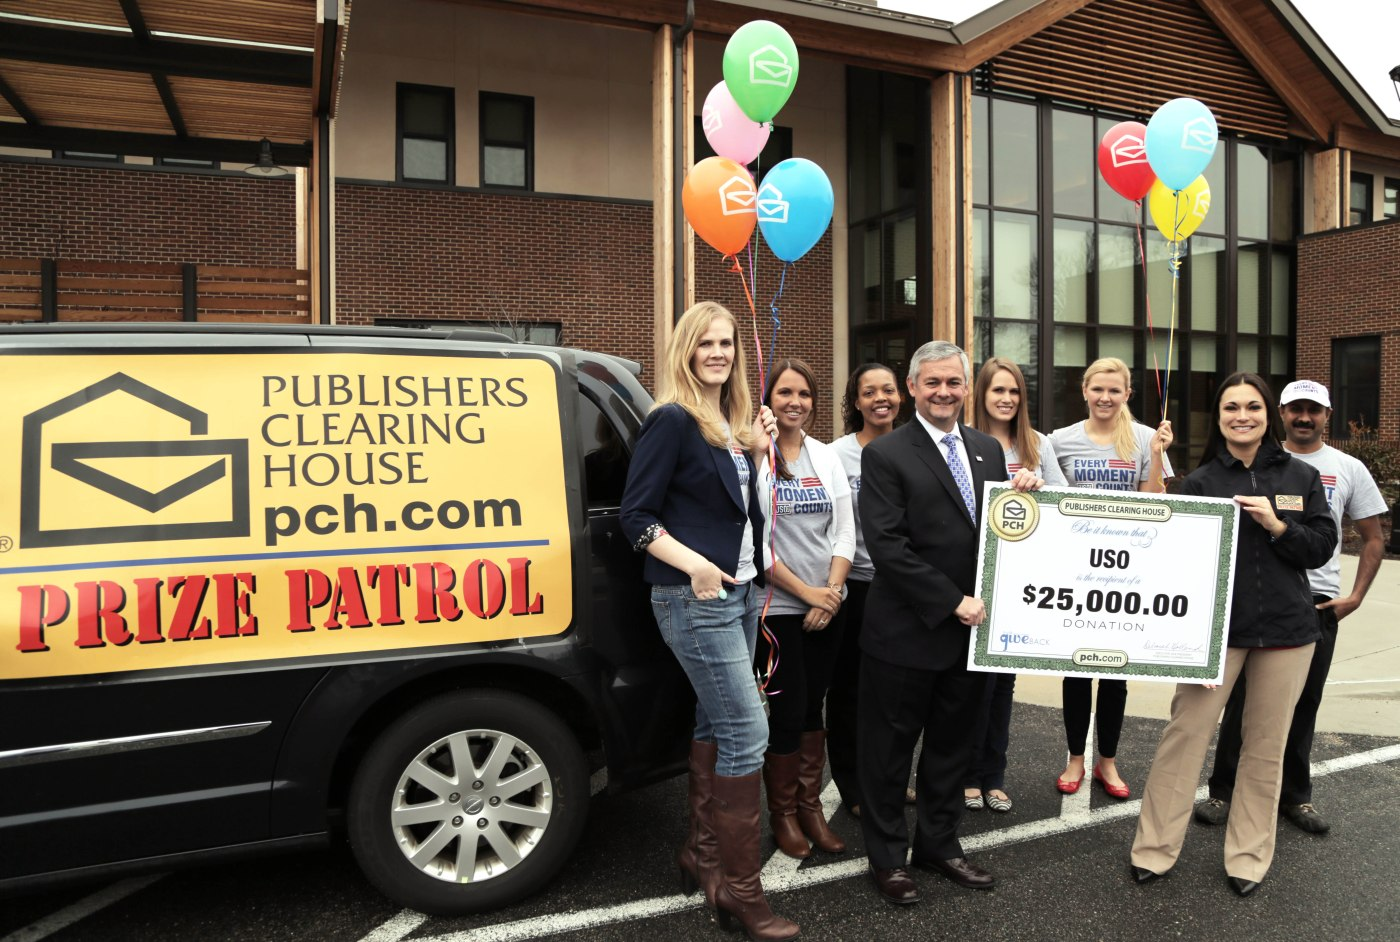 Publishers Clearing House Prize Patrol Delivers $25,000 Check to the